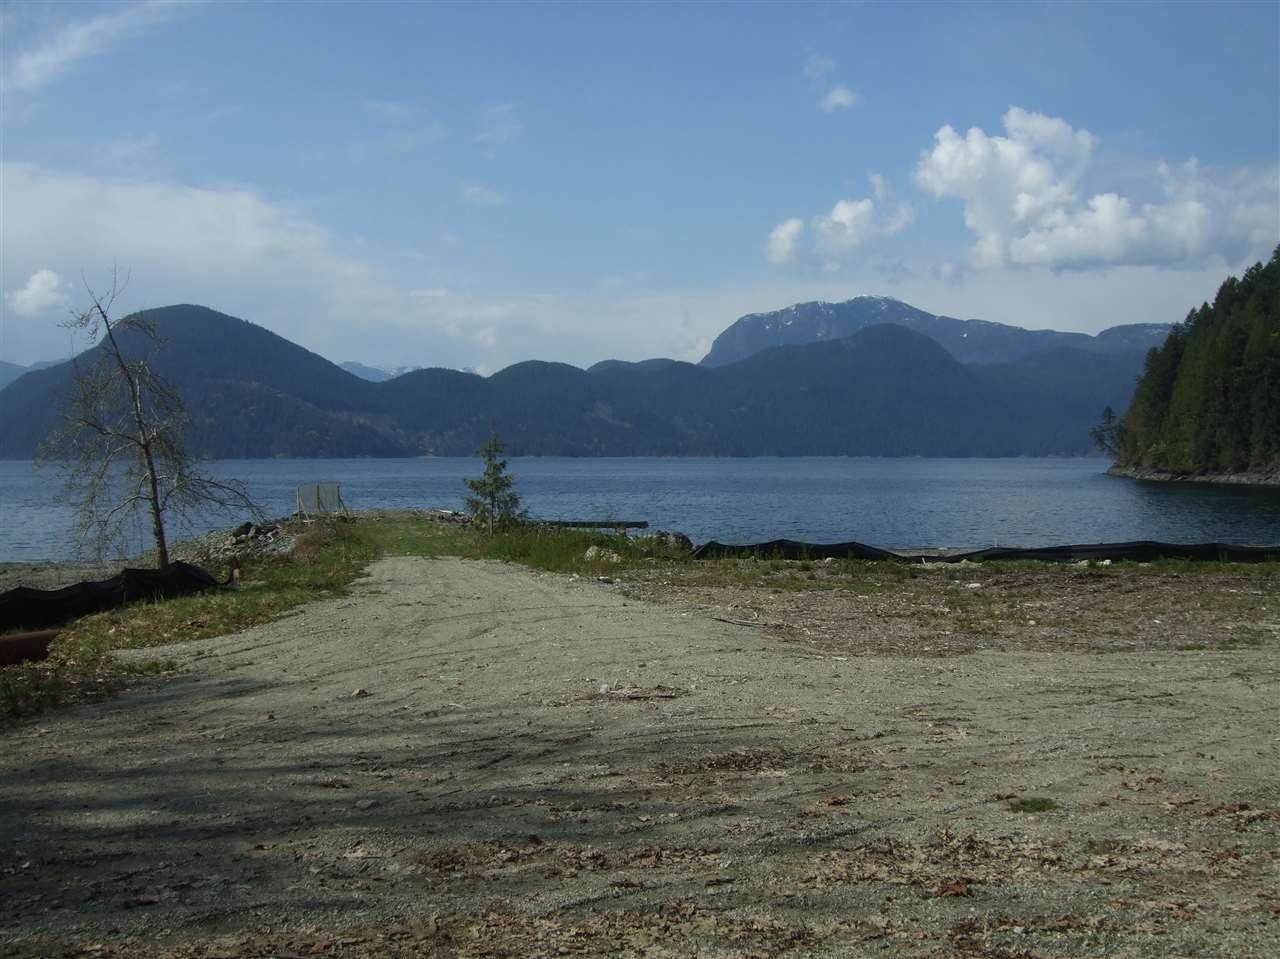 Photo 6: Photos: DL 5658 KILLAM BAY in Egmont: Pender Harbour Egmont Land for sale (Sunshine Coast)  : MLS®# R2402613